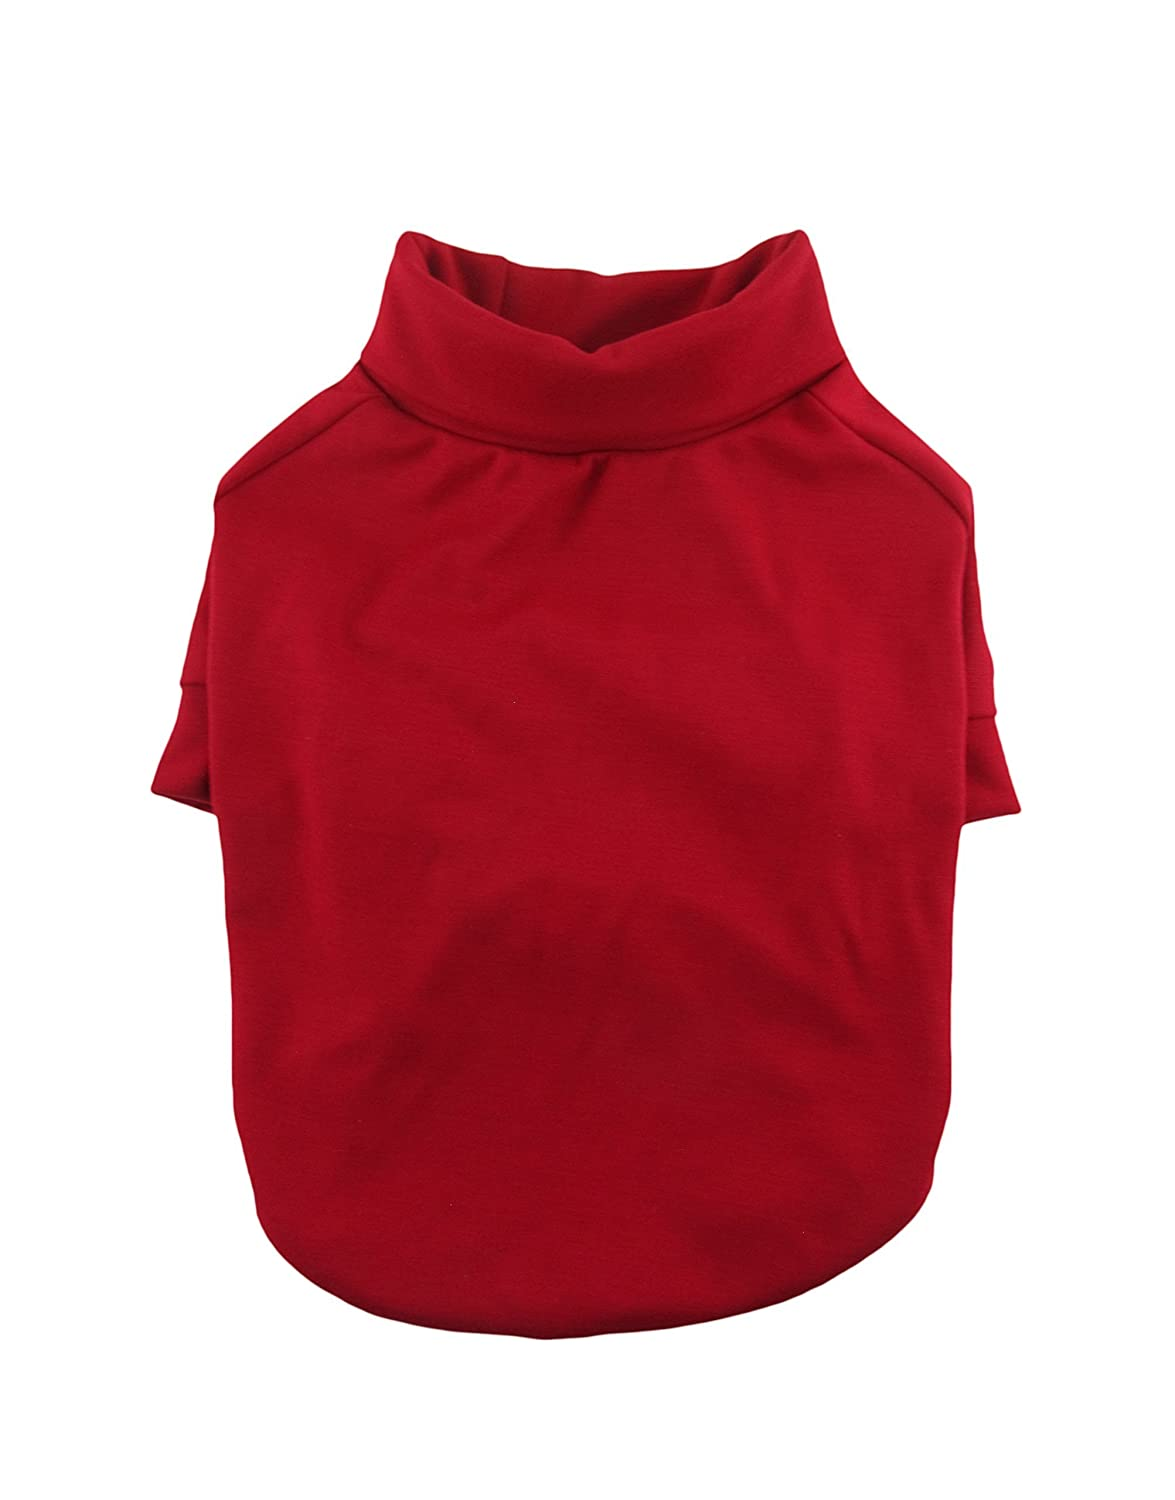 Red Turtleneck Raglan Tee, Dog Top, Dog Clothing, Dog Apparel, Dog Fashion, Pet Apparel